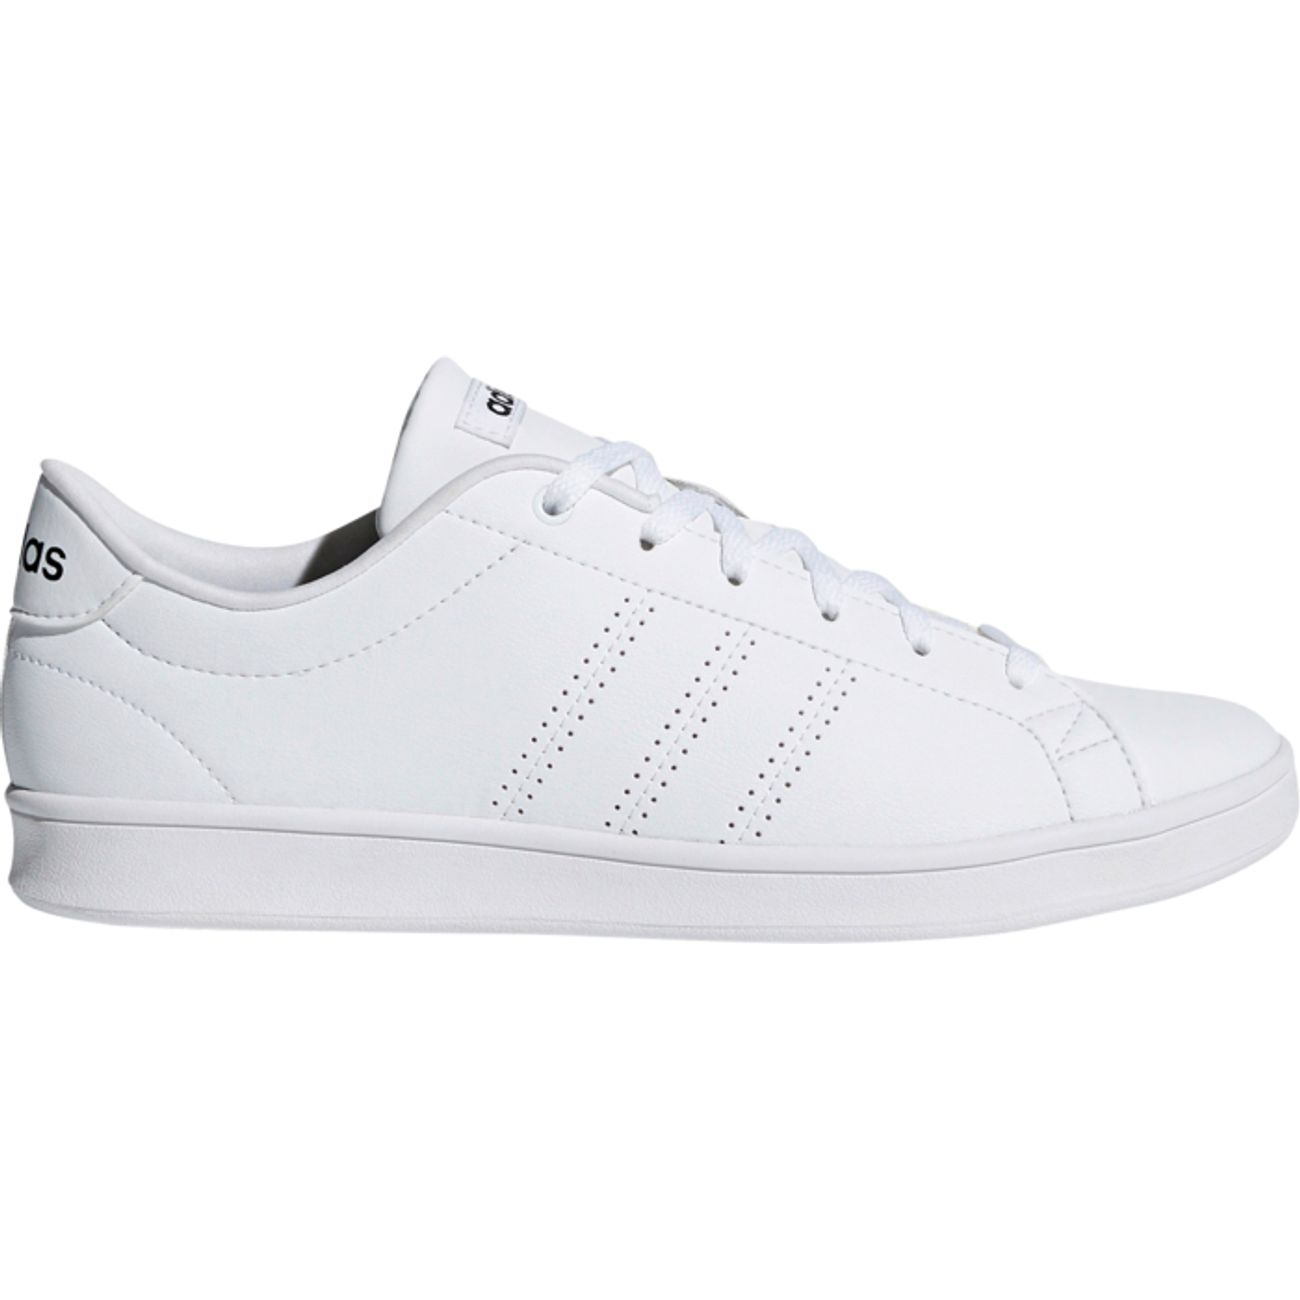 CHAUSSURES BASSES Tennis femme ADIDAS ADVANTAGE CLEAN QT